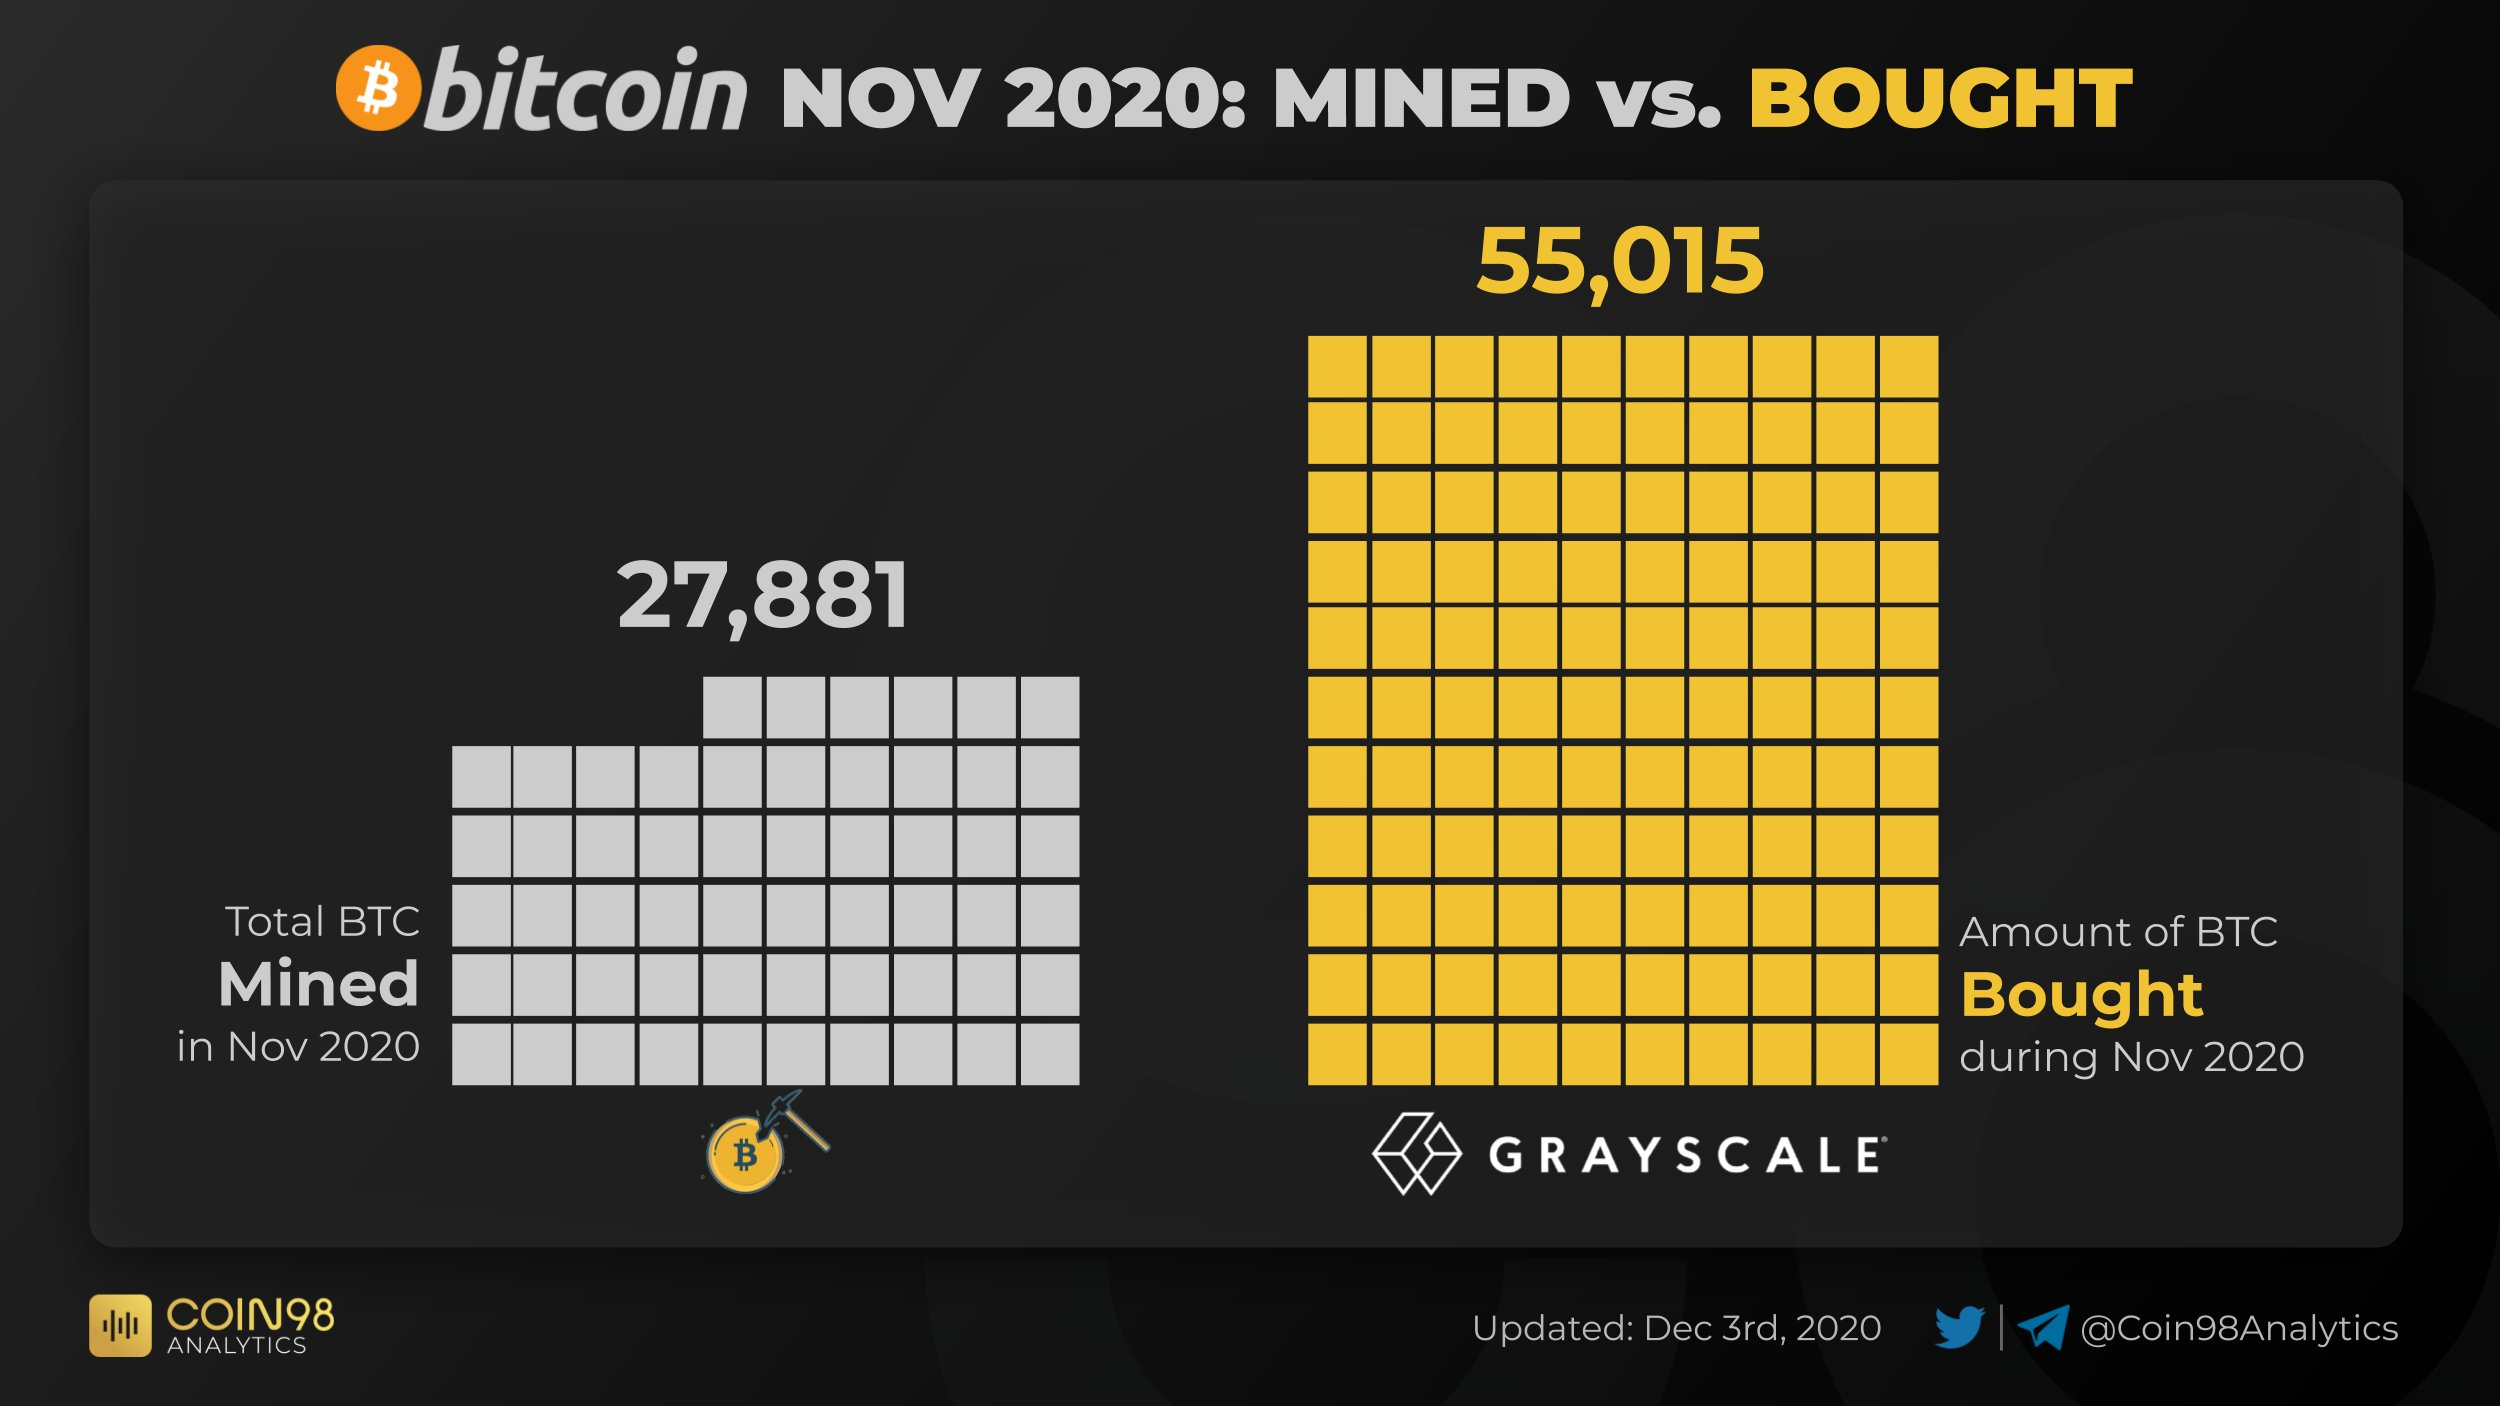 Bitcoin whales promoting to establishments as Grayscale provides 7,188 BTC in 24 hours